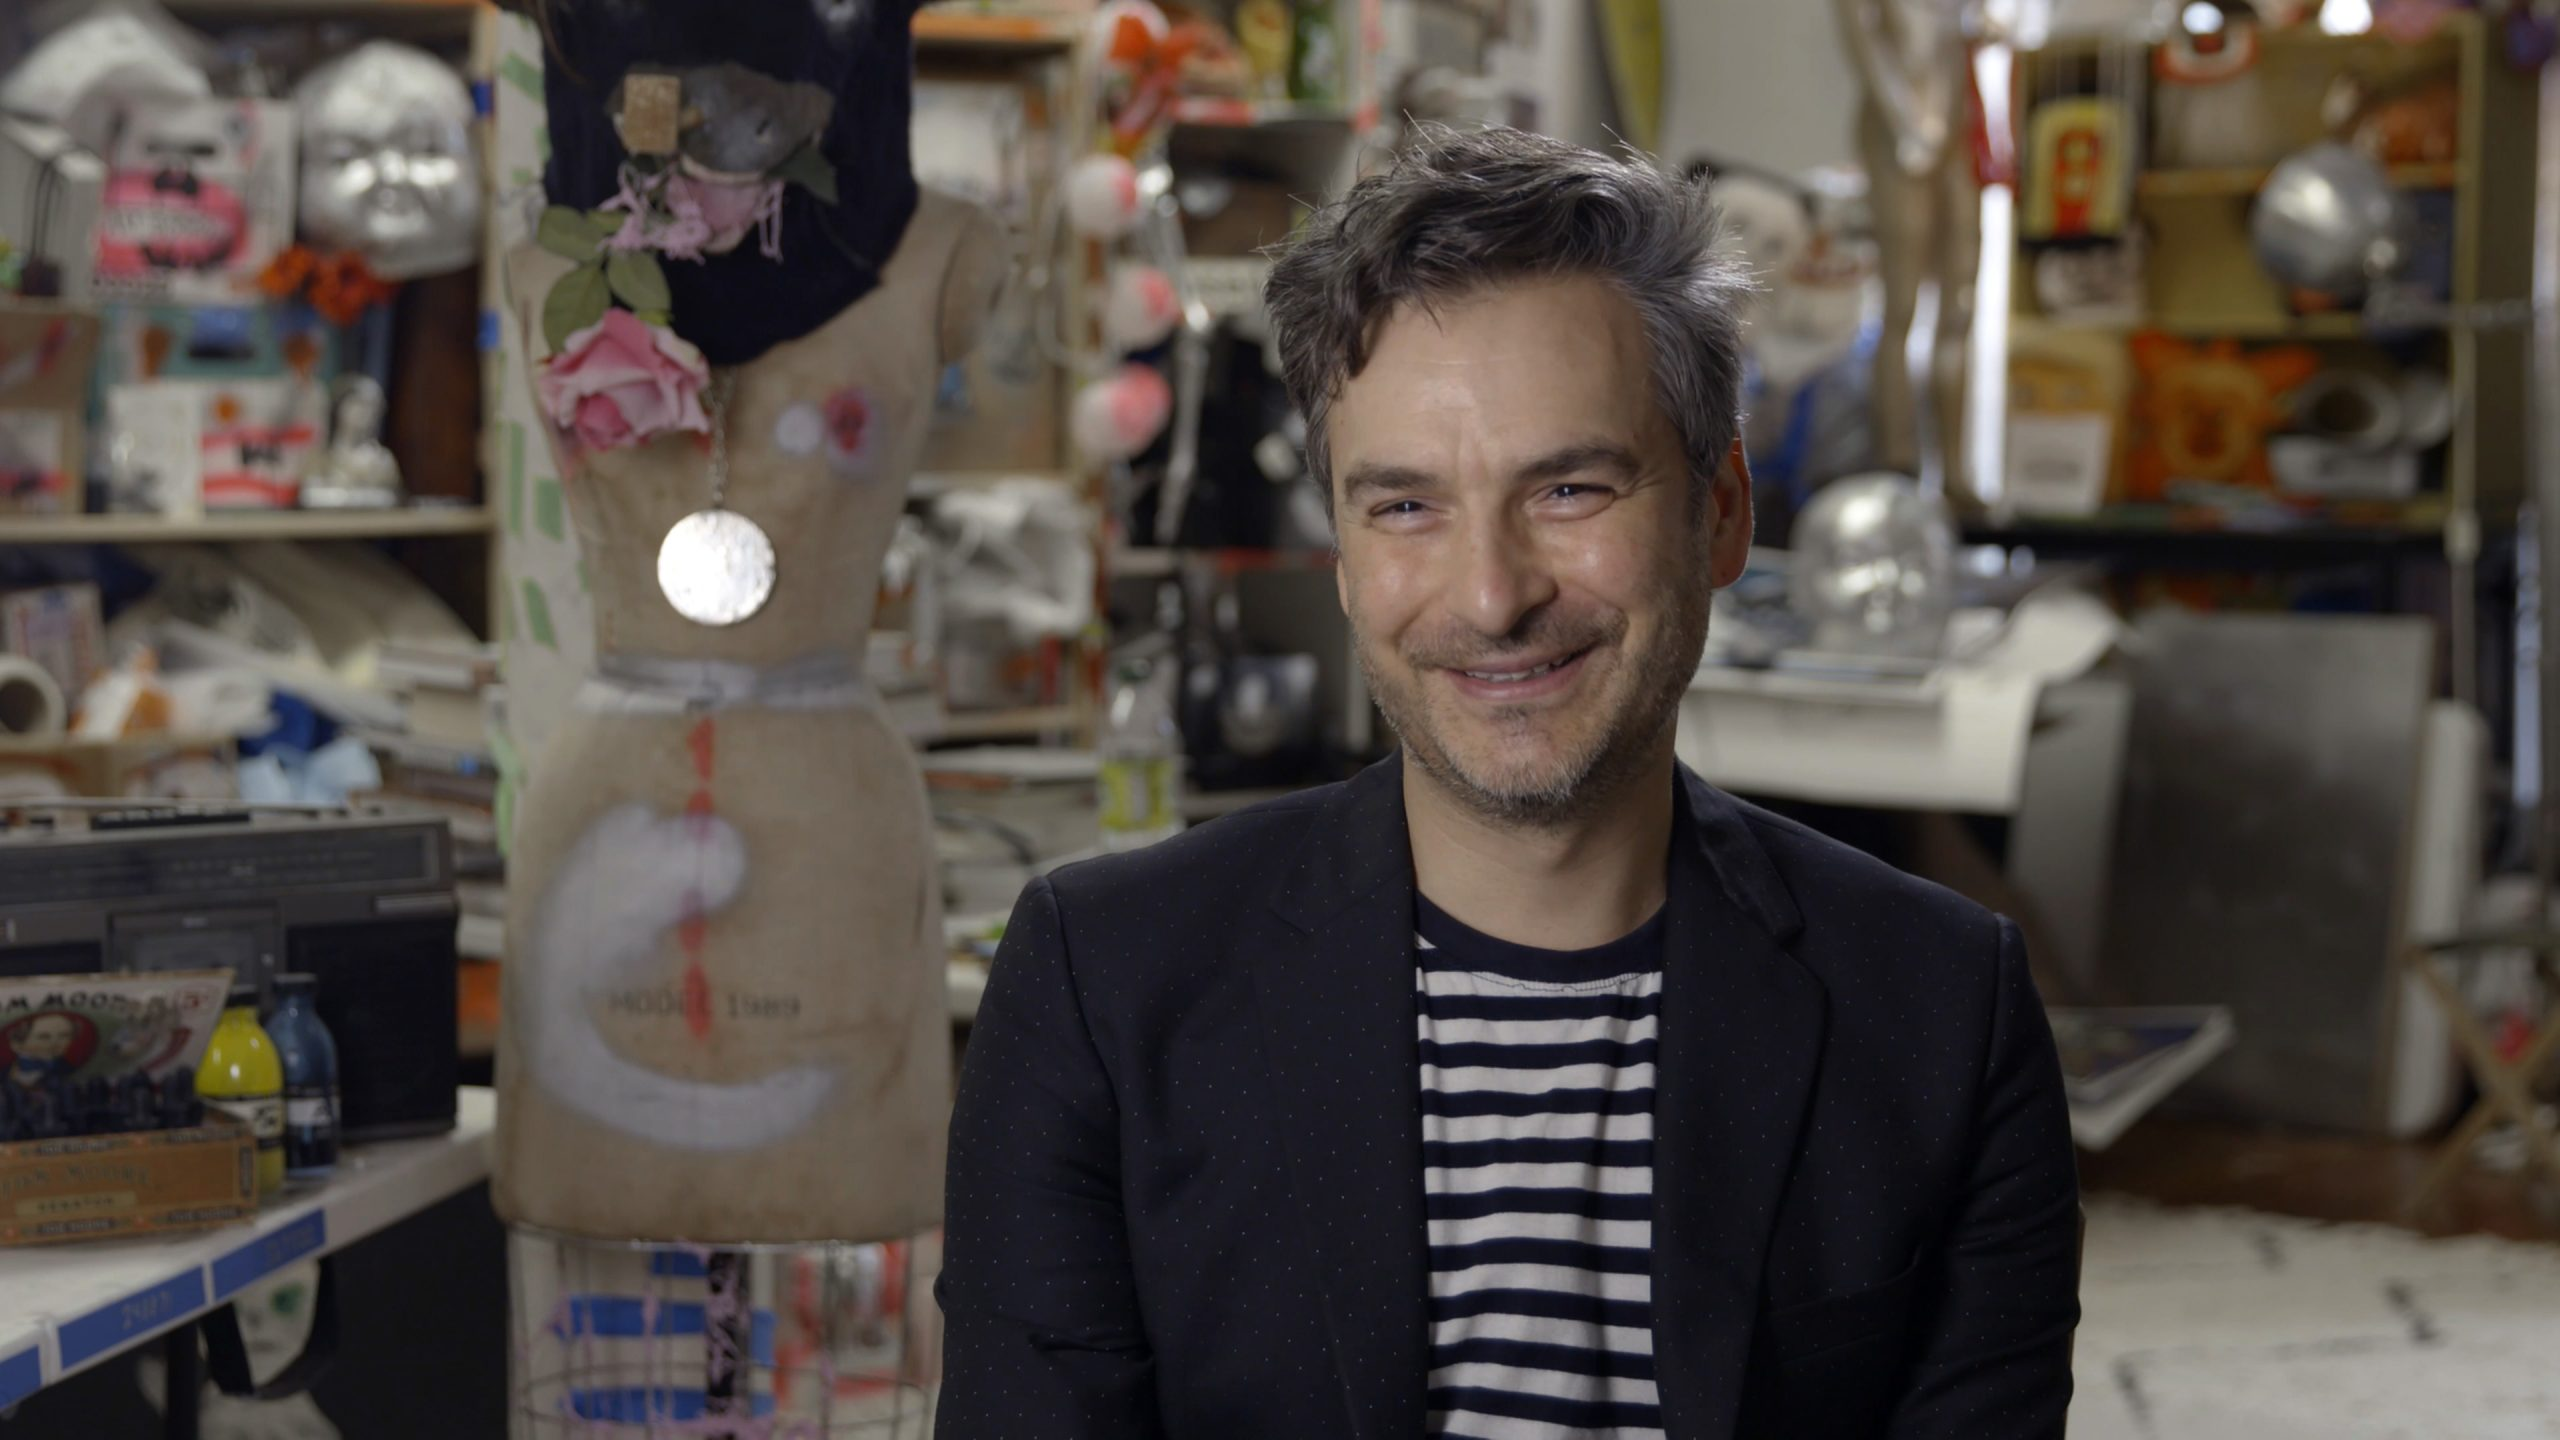 'I Have One Foot in the Subconscious and One In Reality': As His L-Train Murals Debut, Watch Marcel Dzama Explain The Dark Side of His Whimsical Art | Artnet News